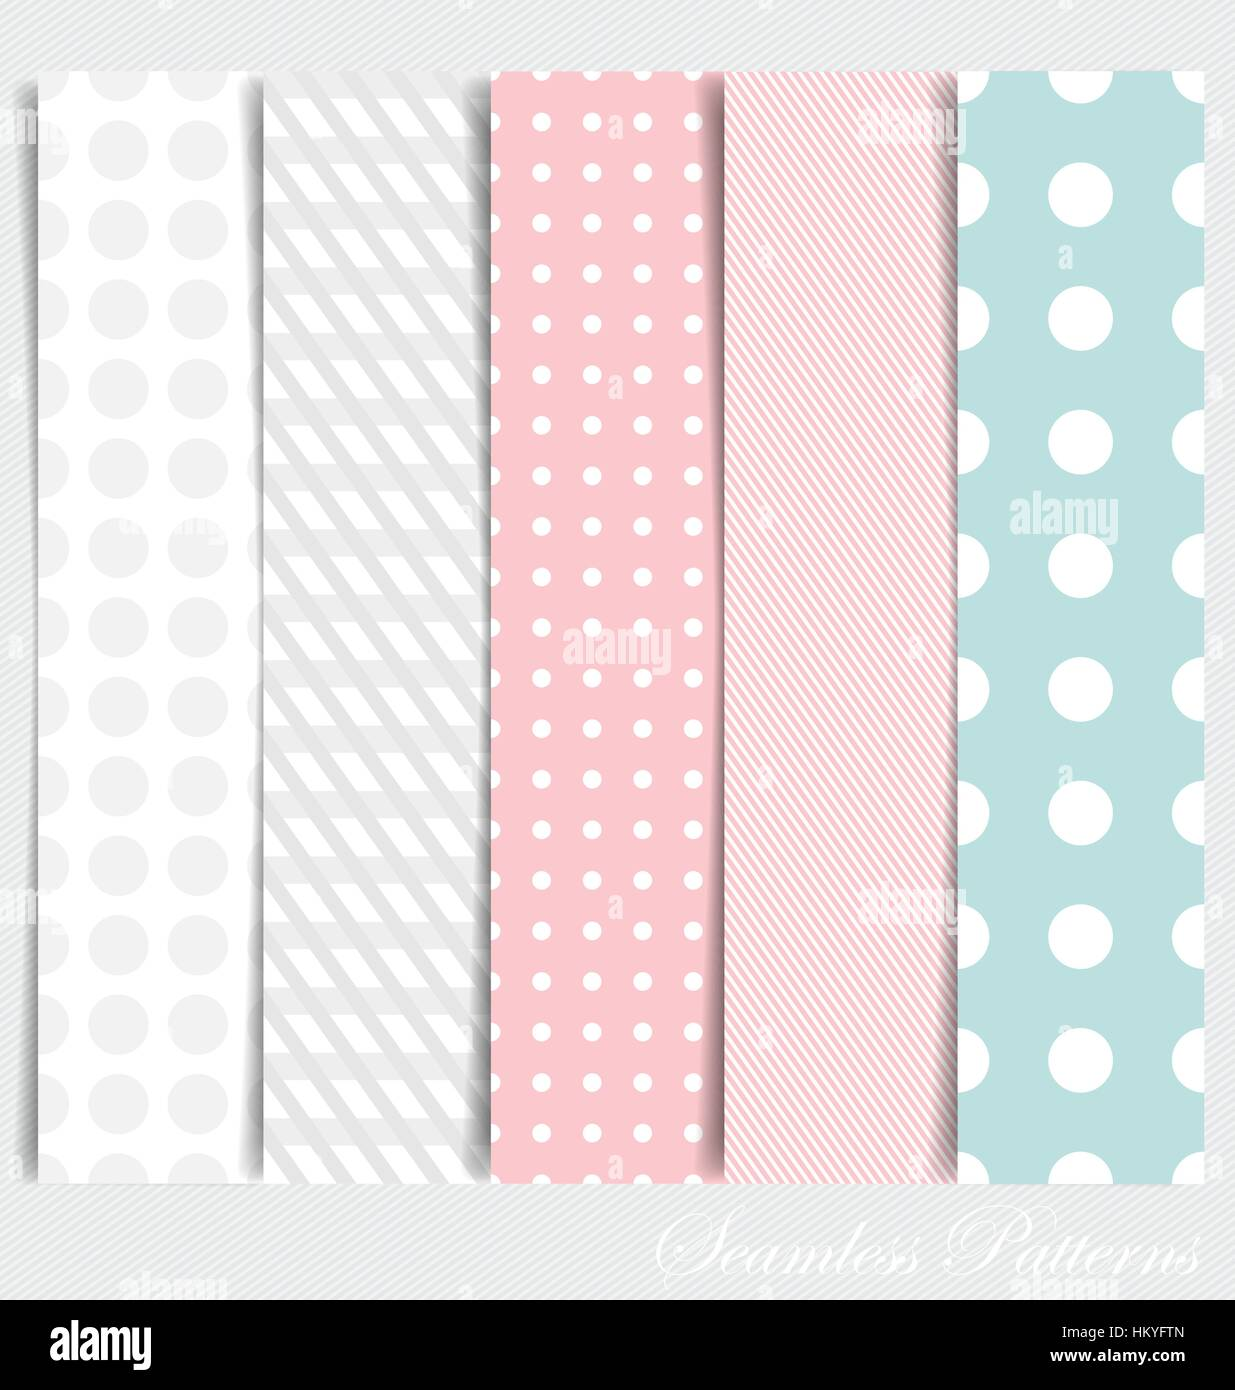 Cute patterns and seamless backgrounds. Ideal for printing onto fabric and paper or scrap booking. - Stock Image